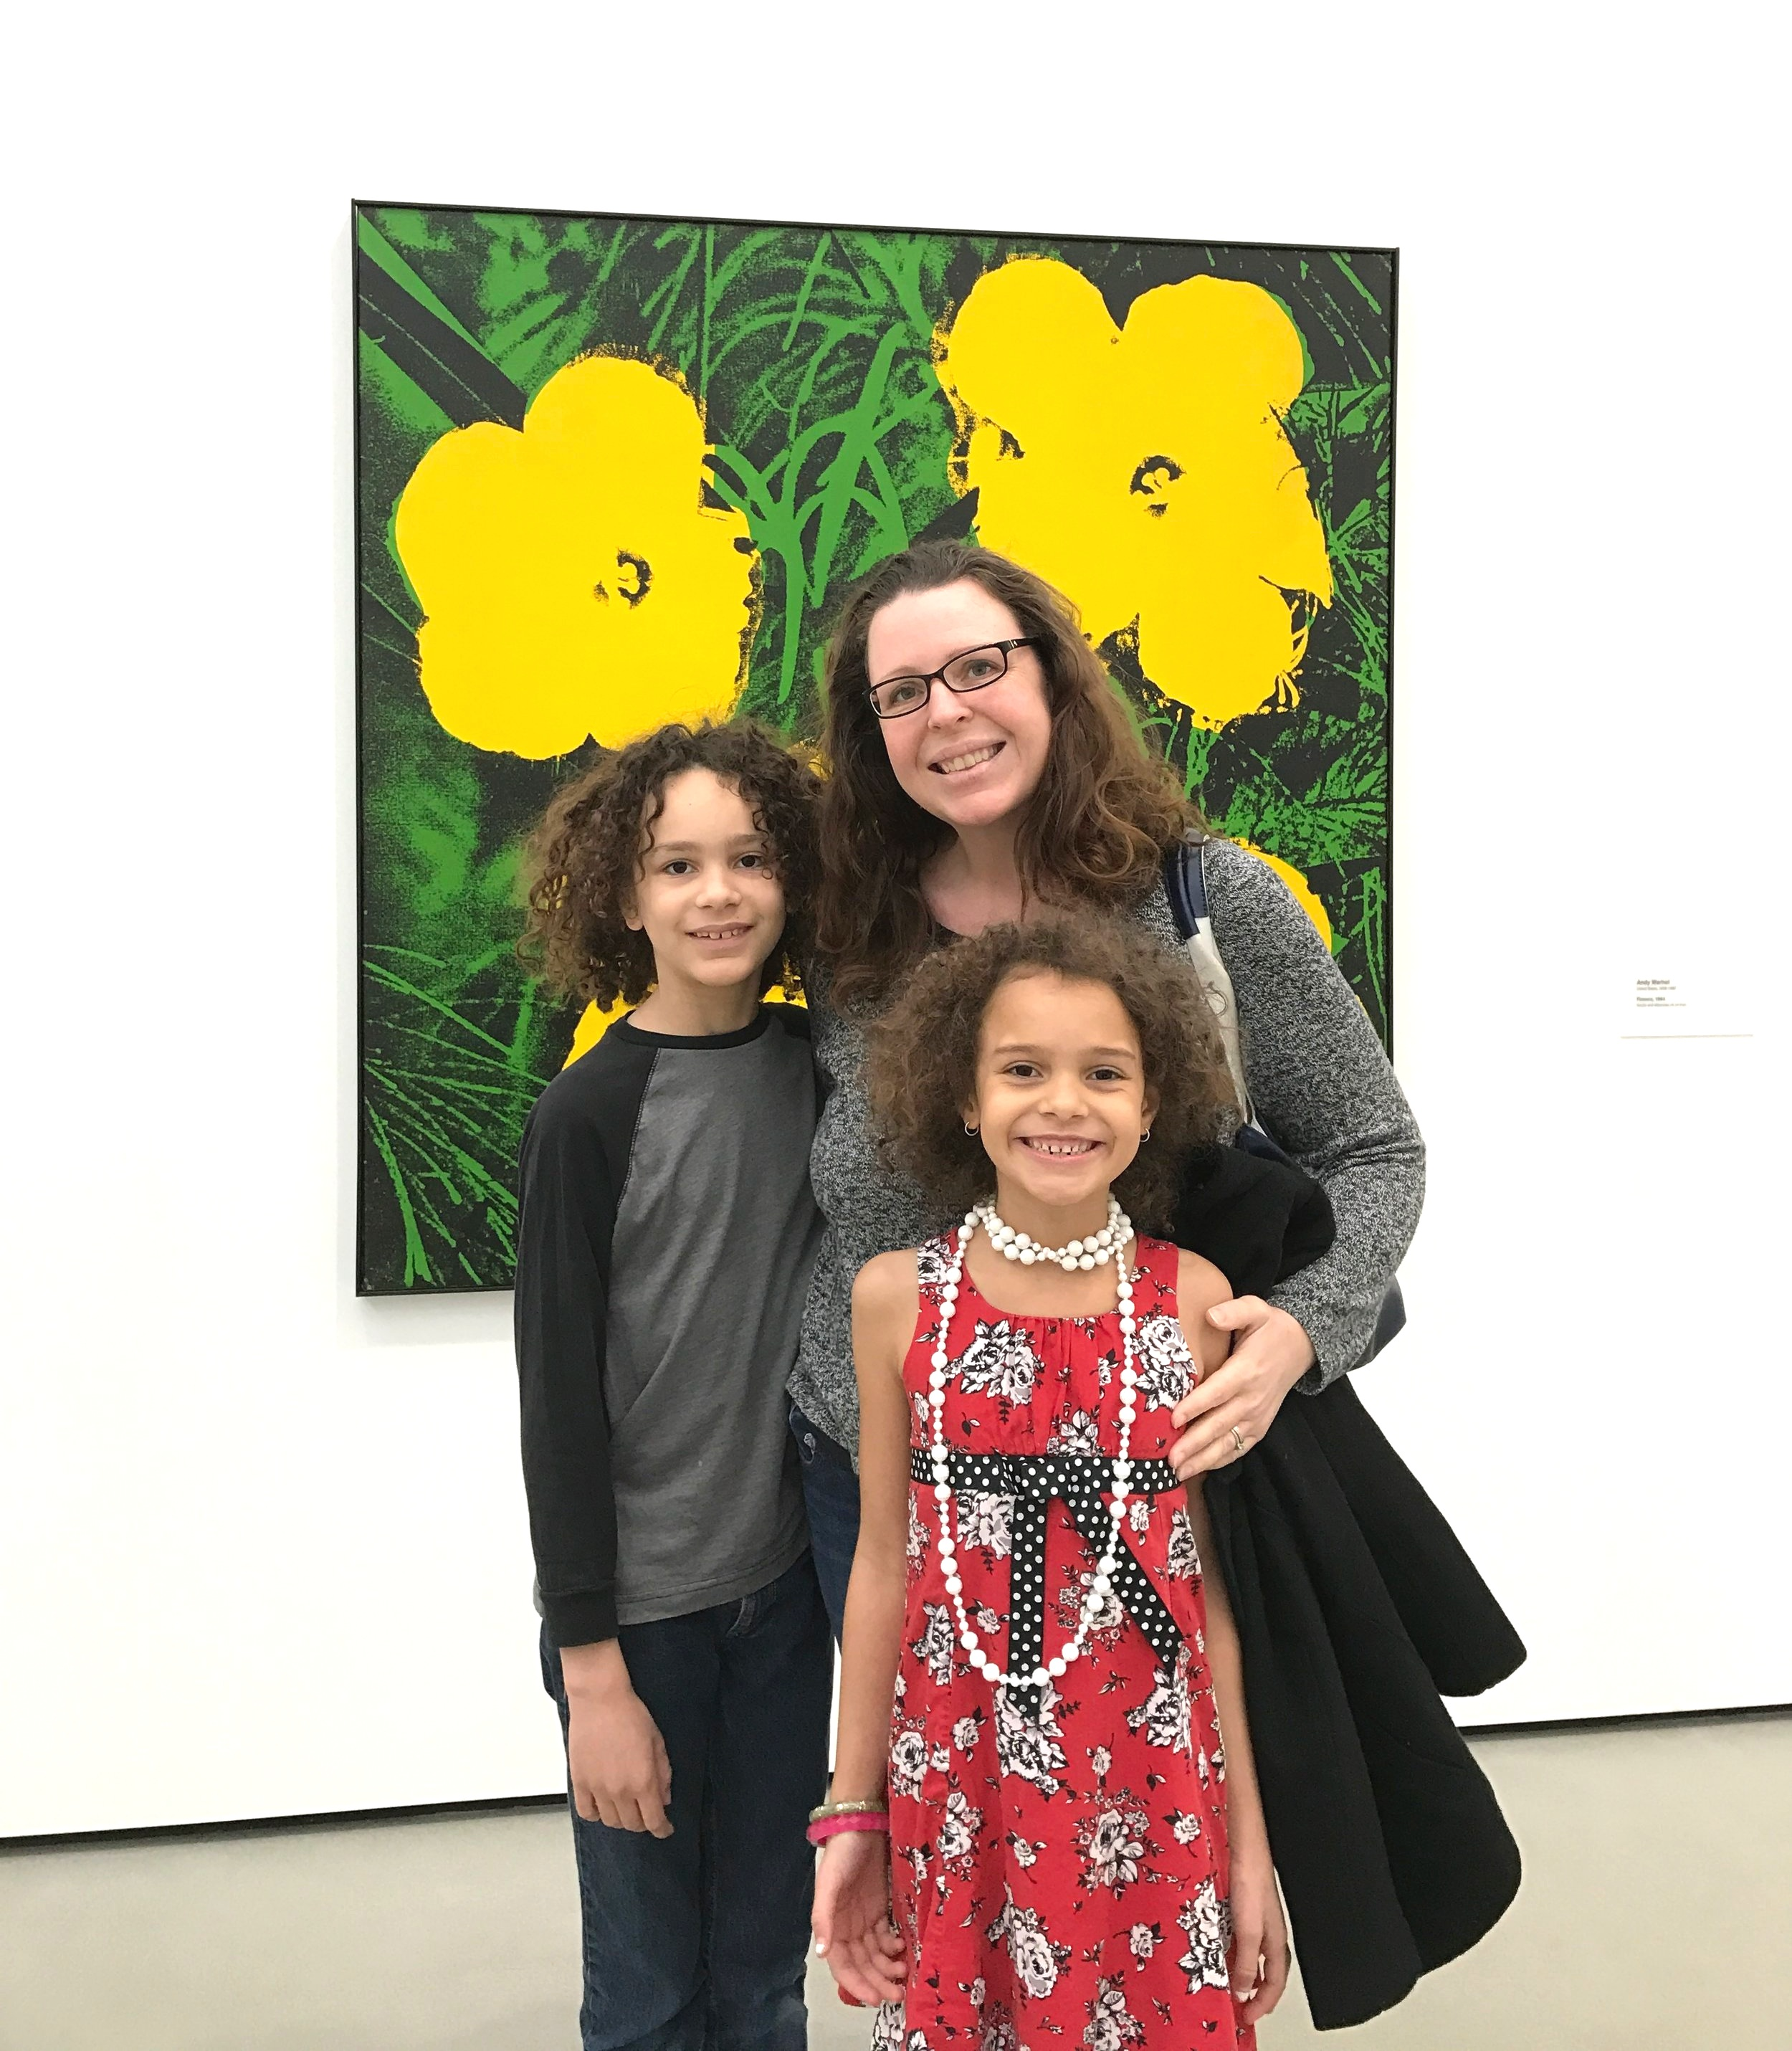 Hi, I'm Lotus – founder of Art History Kids, (coffee fanatic), and homeschool mom to two creative kids. I can't wait to meet you inside The Studio! -